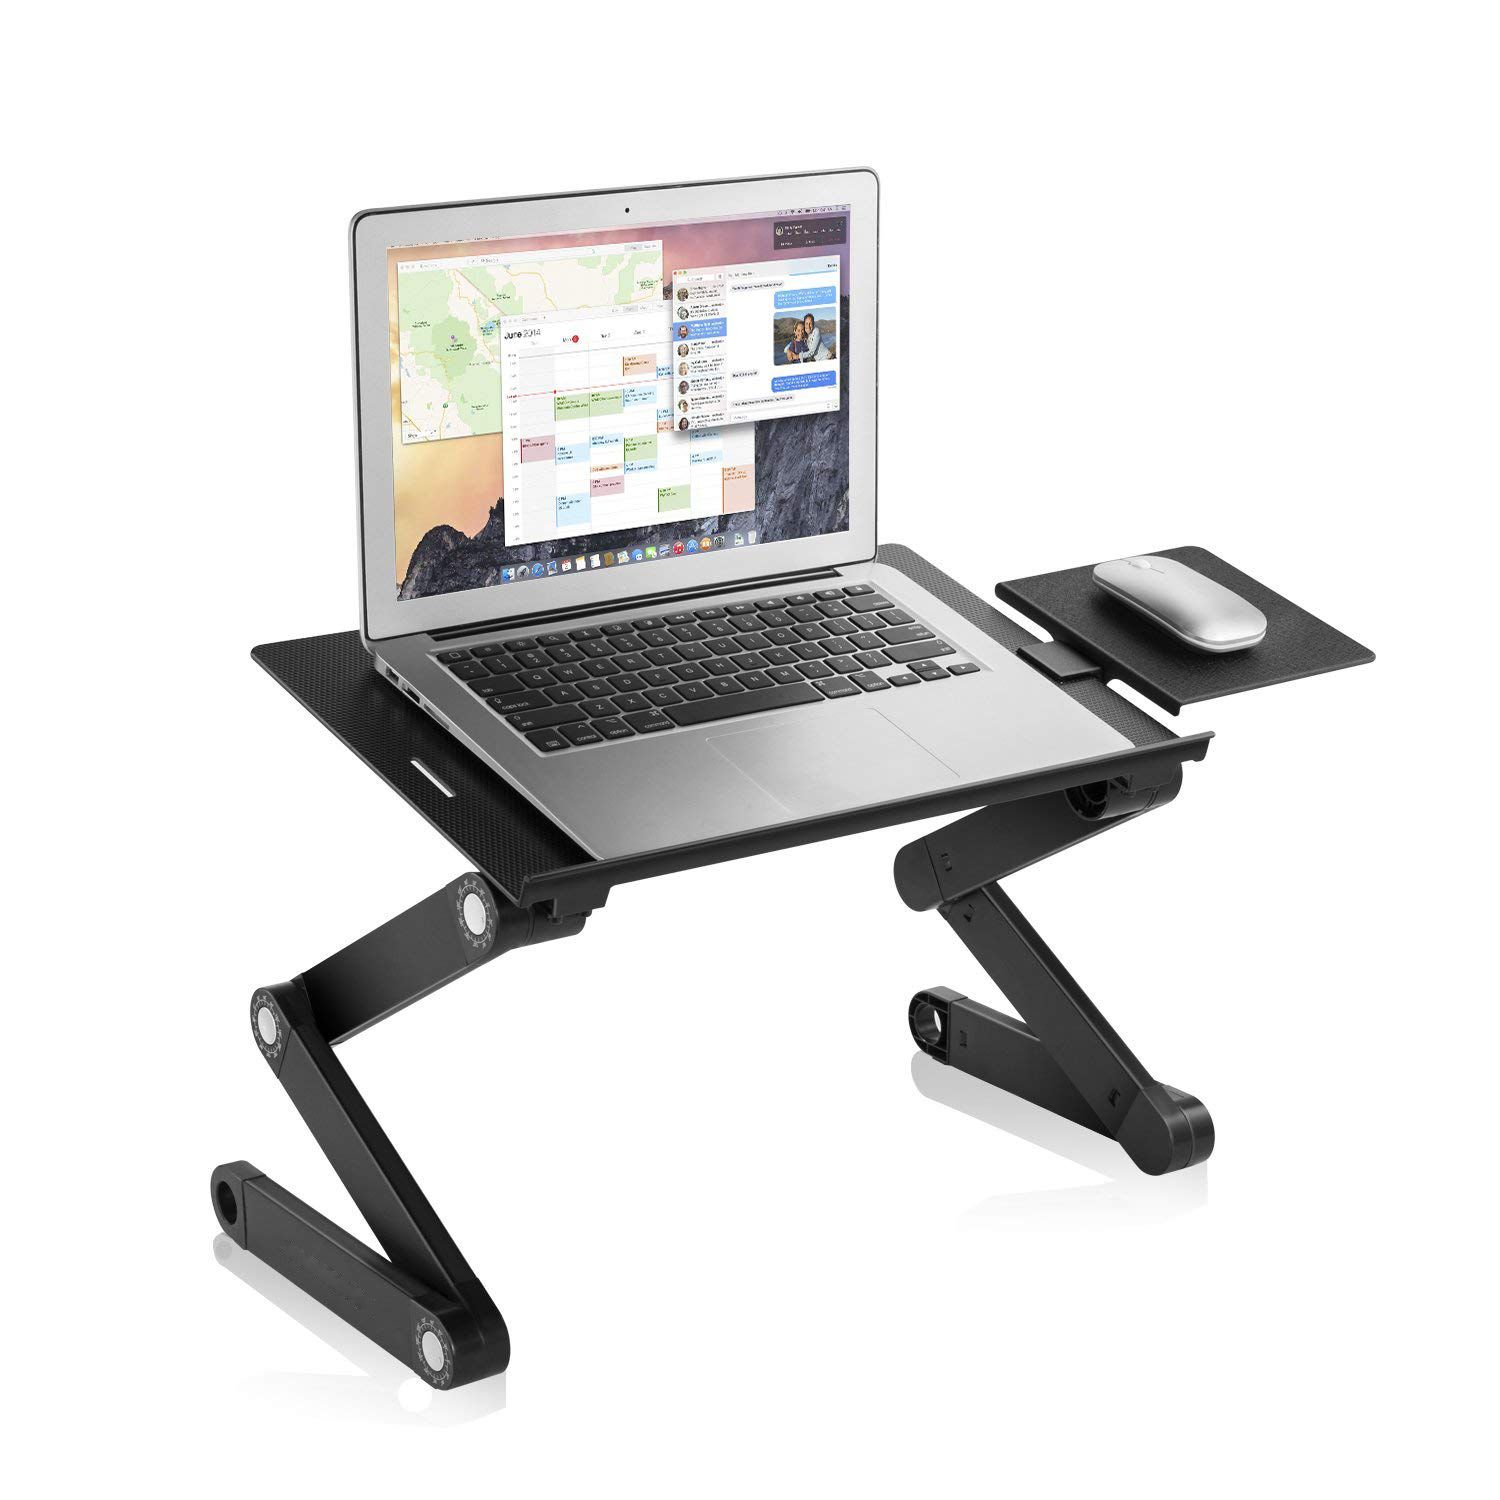 Laptop Table Stand Adjustable Riser Notebooks Cozy Desk With Ergonomic Mouse Pad And Fans Lightweight Ultrabook Laptop Table Laptop Stand Bed Bed Tray Table